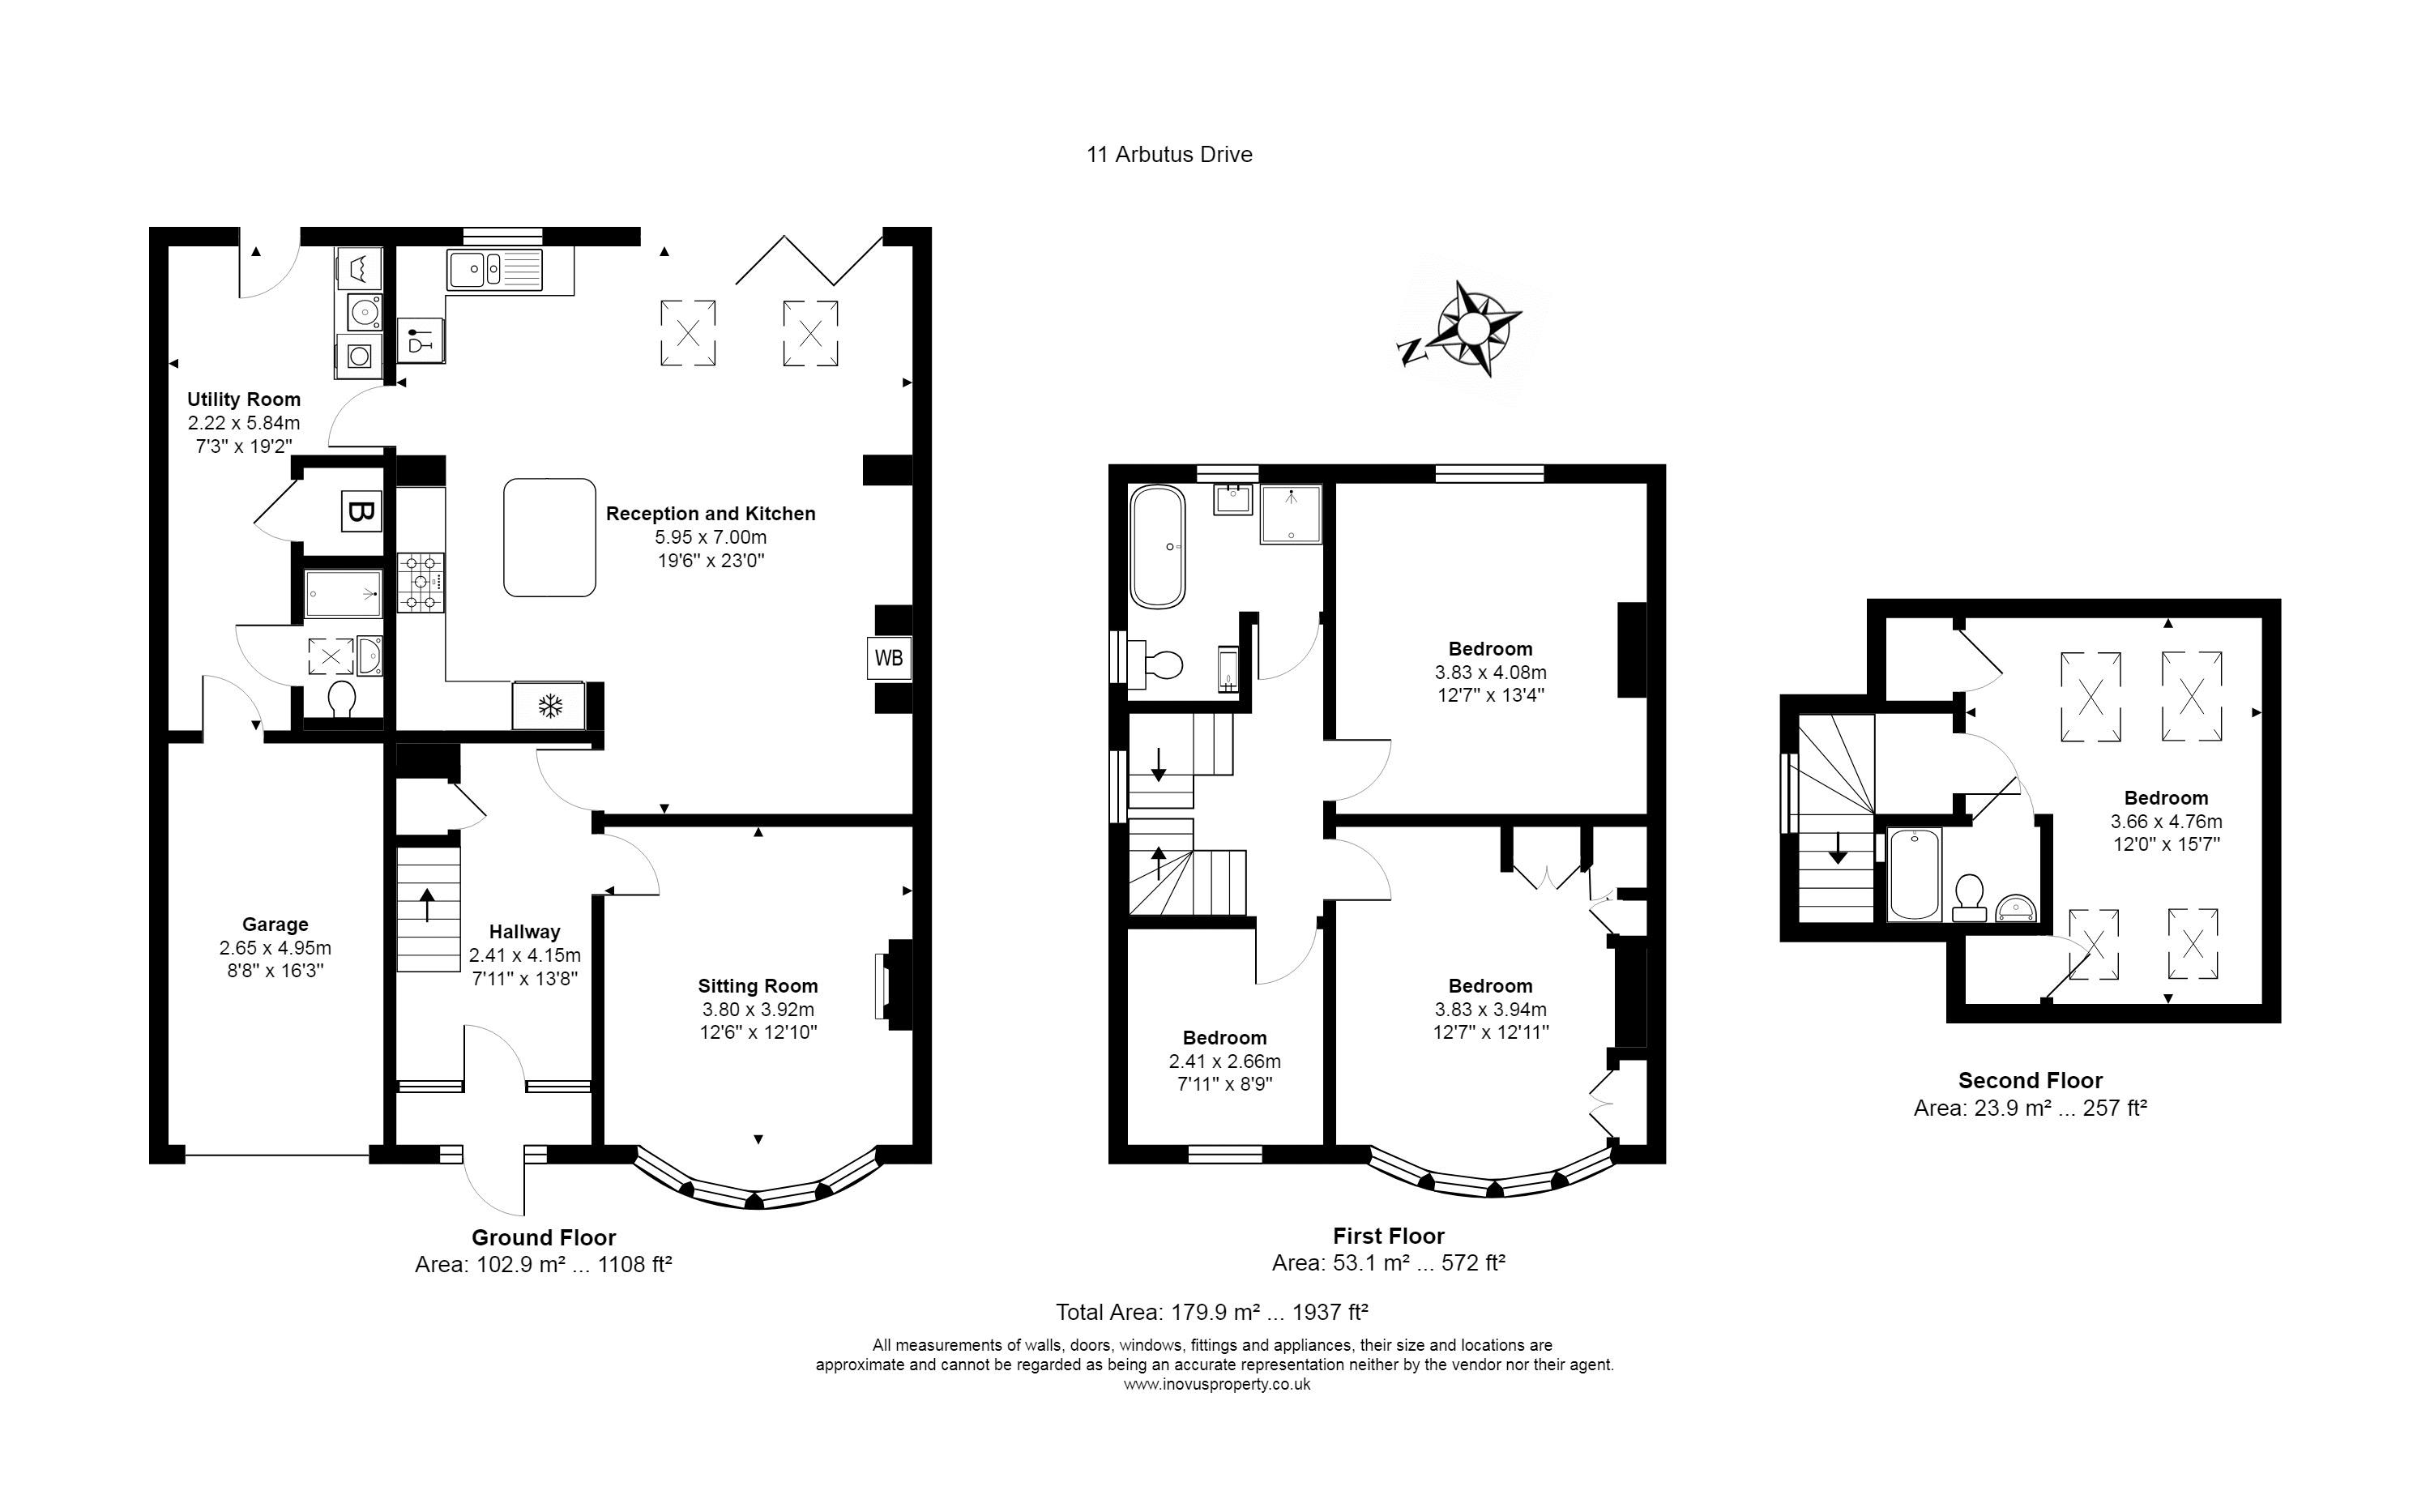 Floorplan for the property 4 bed House for sale on Arbutus Drive - 1